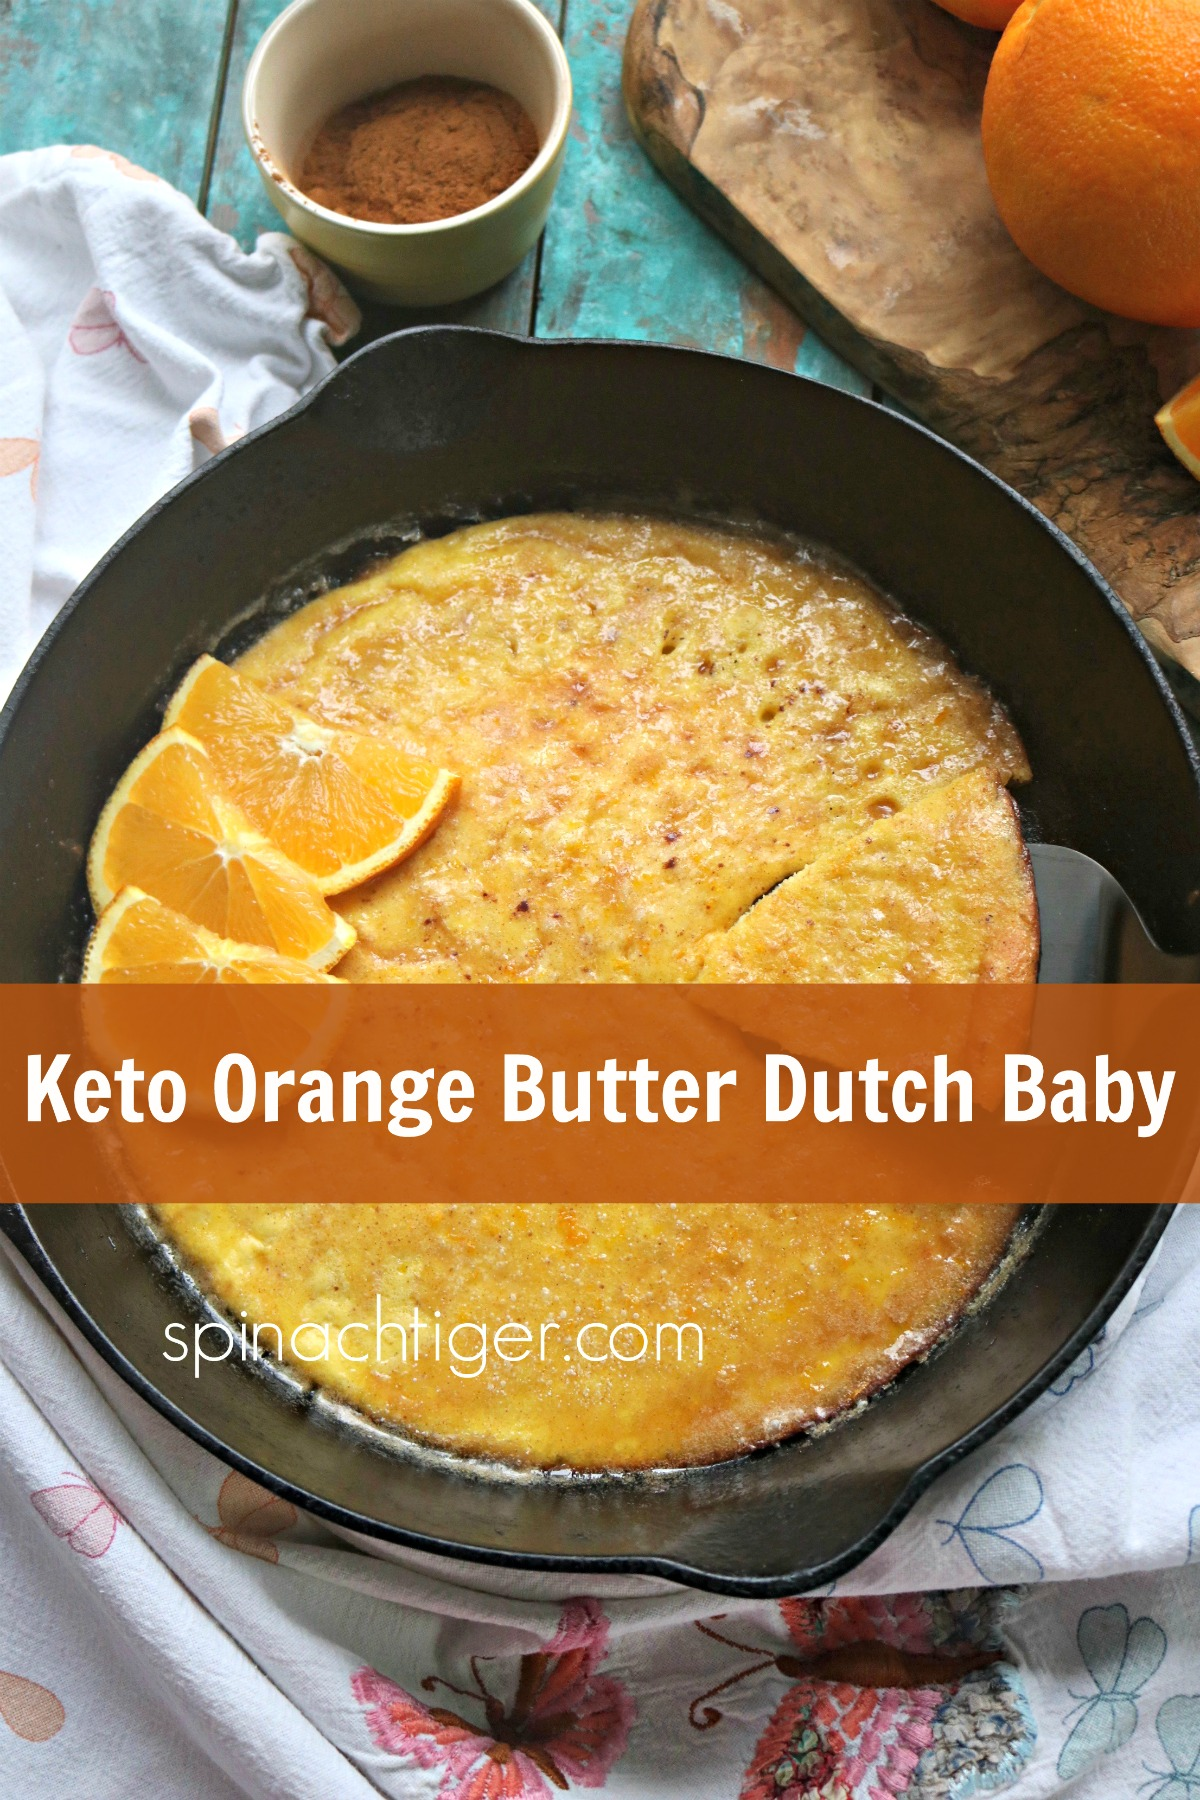 Keto Orange Butter Dutch Baby from spinach tiger